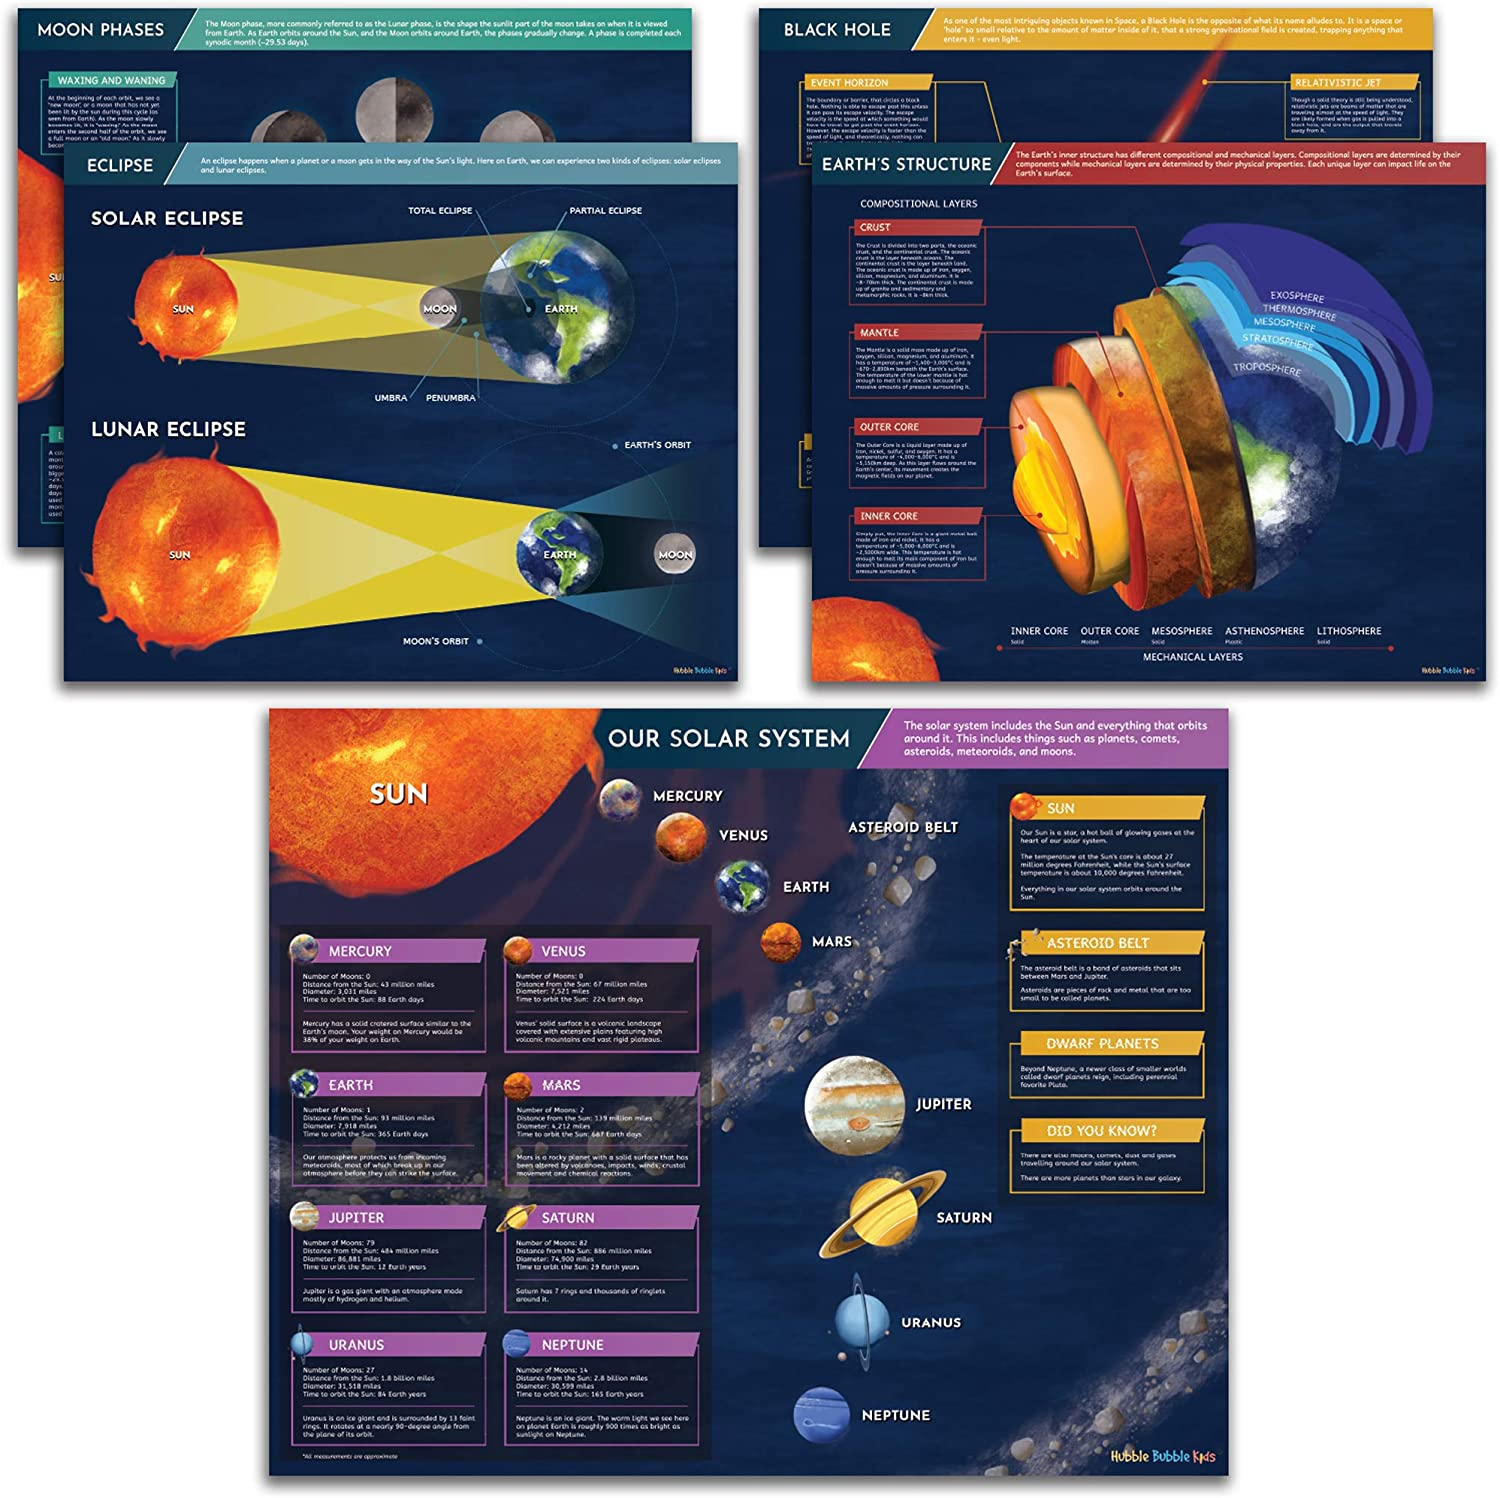 5 Large Kids Science Posters - Educational Solar System Space Posters for Classrooms, Solar System Posters for Kids Rooms. Moon Phases, Solar Eclipse, Earth's Structure, Black Holes and Solar System.